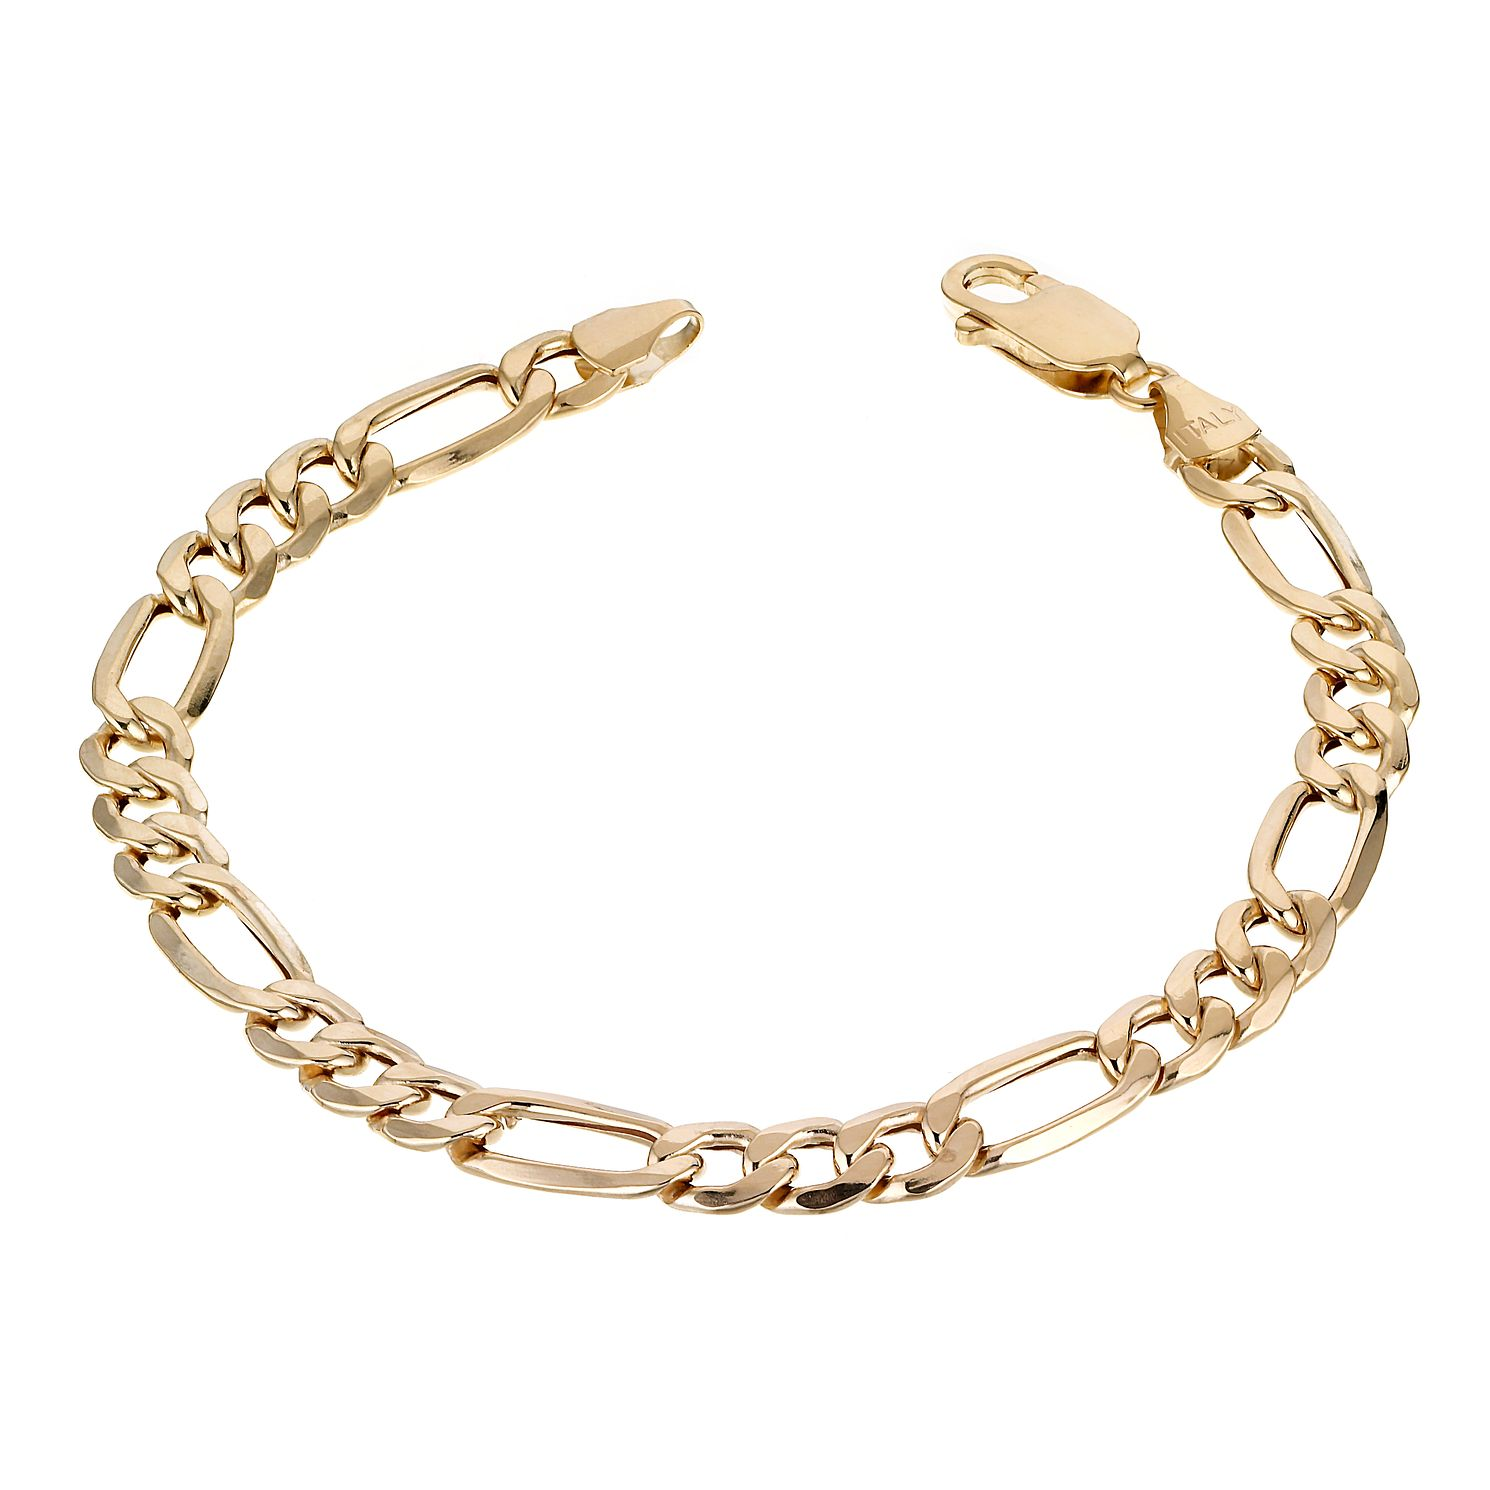 9ct Yellow Gold 7.25 inches Fiagro Bracelet - Product number 1065629